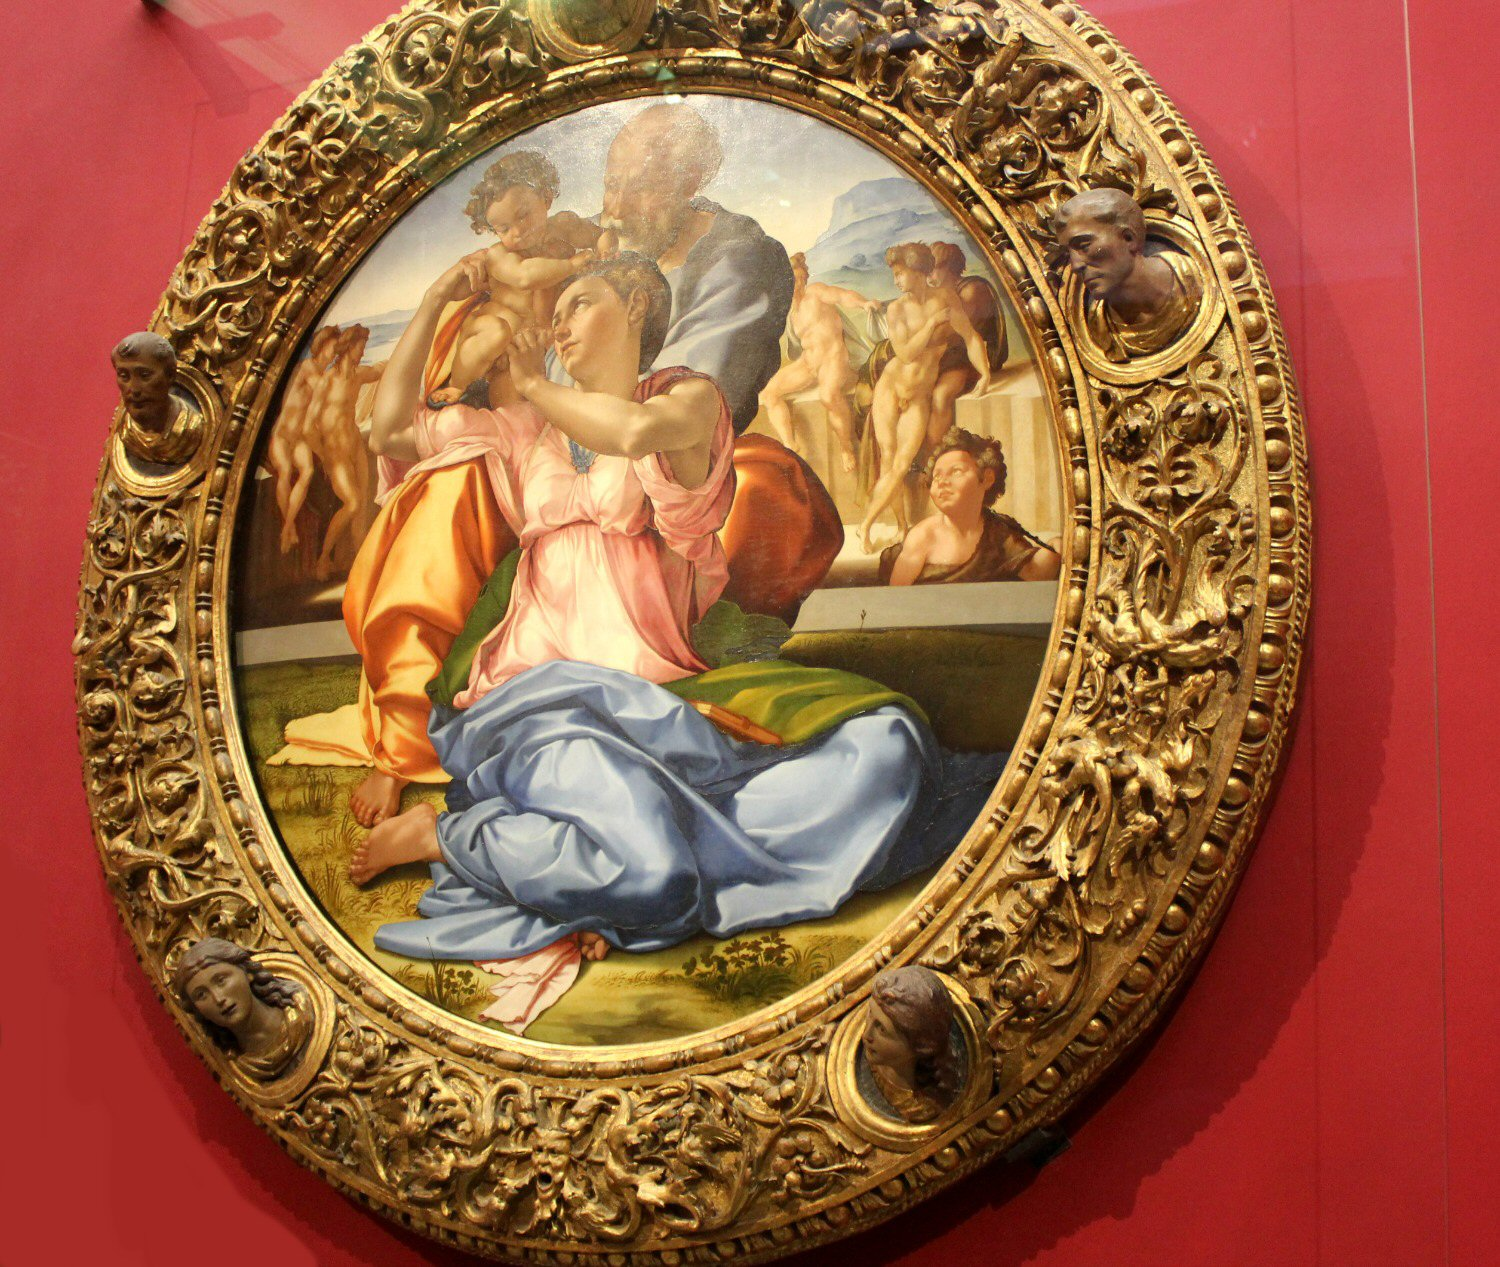 Artwork by Michaelangelo in the Uffizi gallery in Florence, Italy - my Uffizi tour with kids and gelato making day in Florence